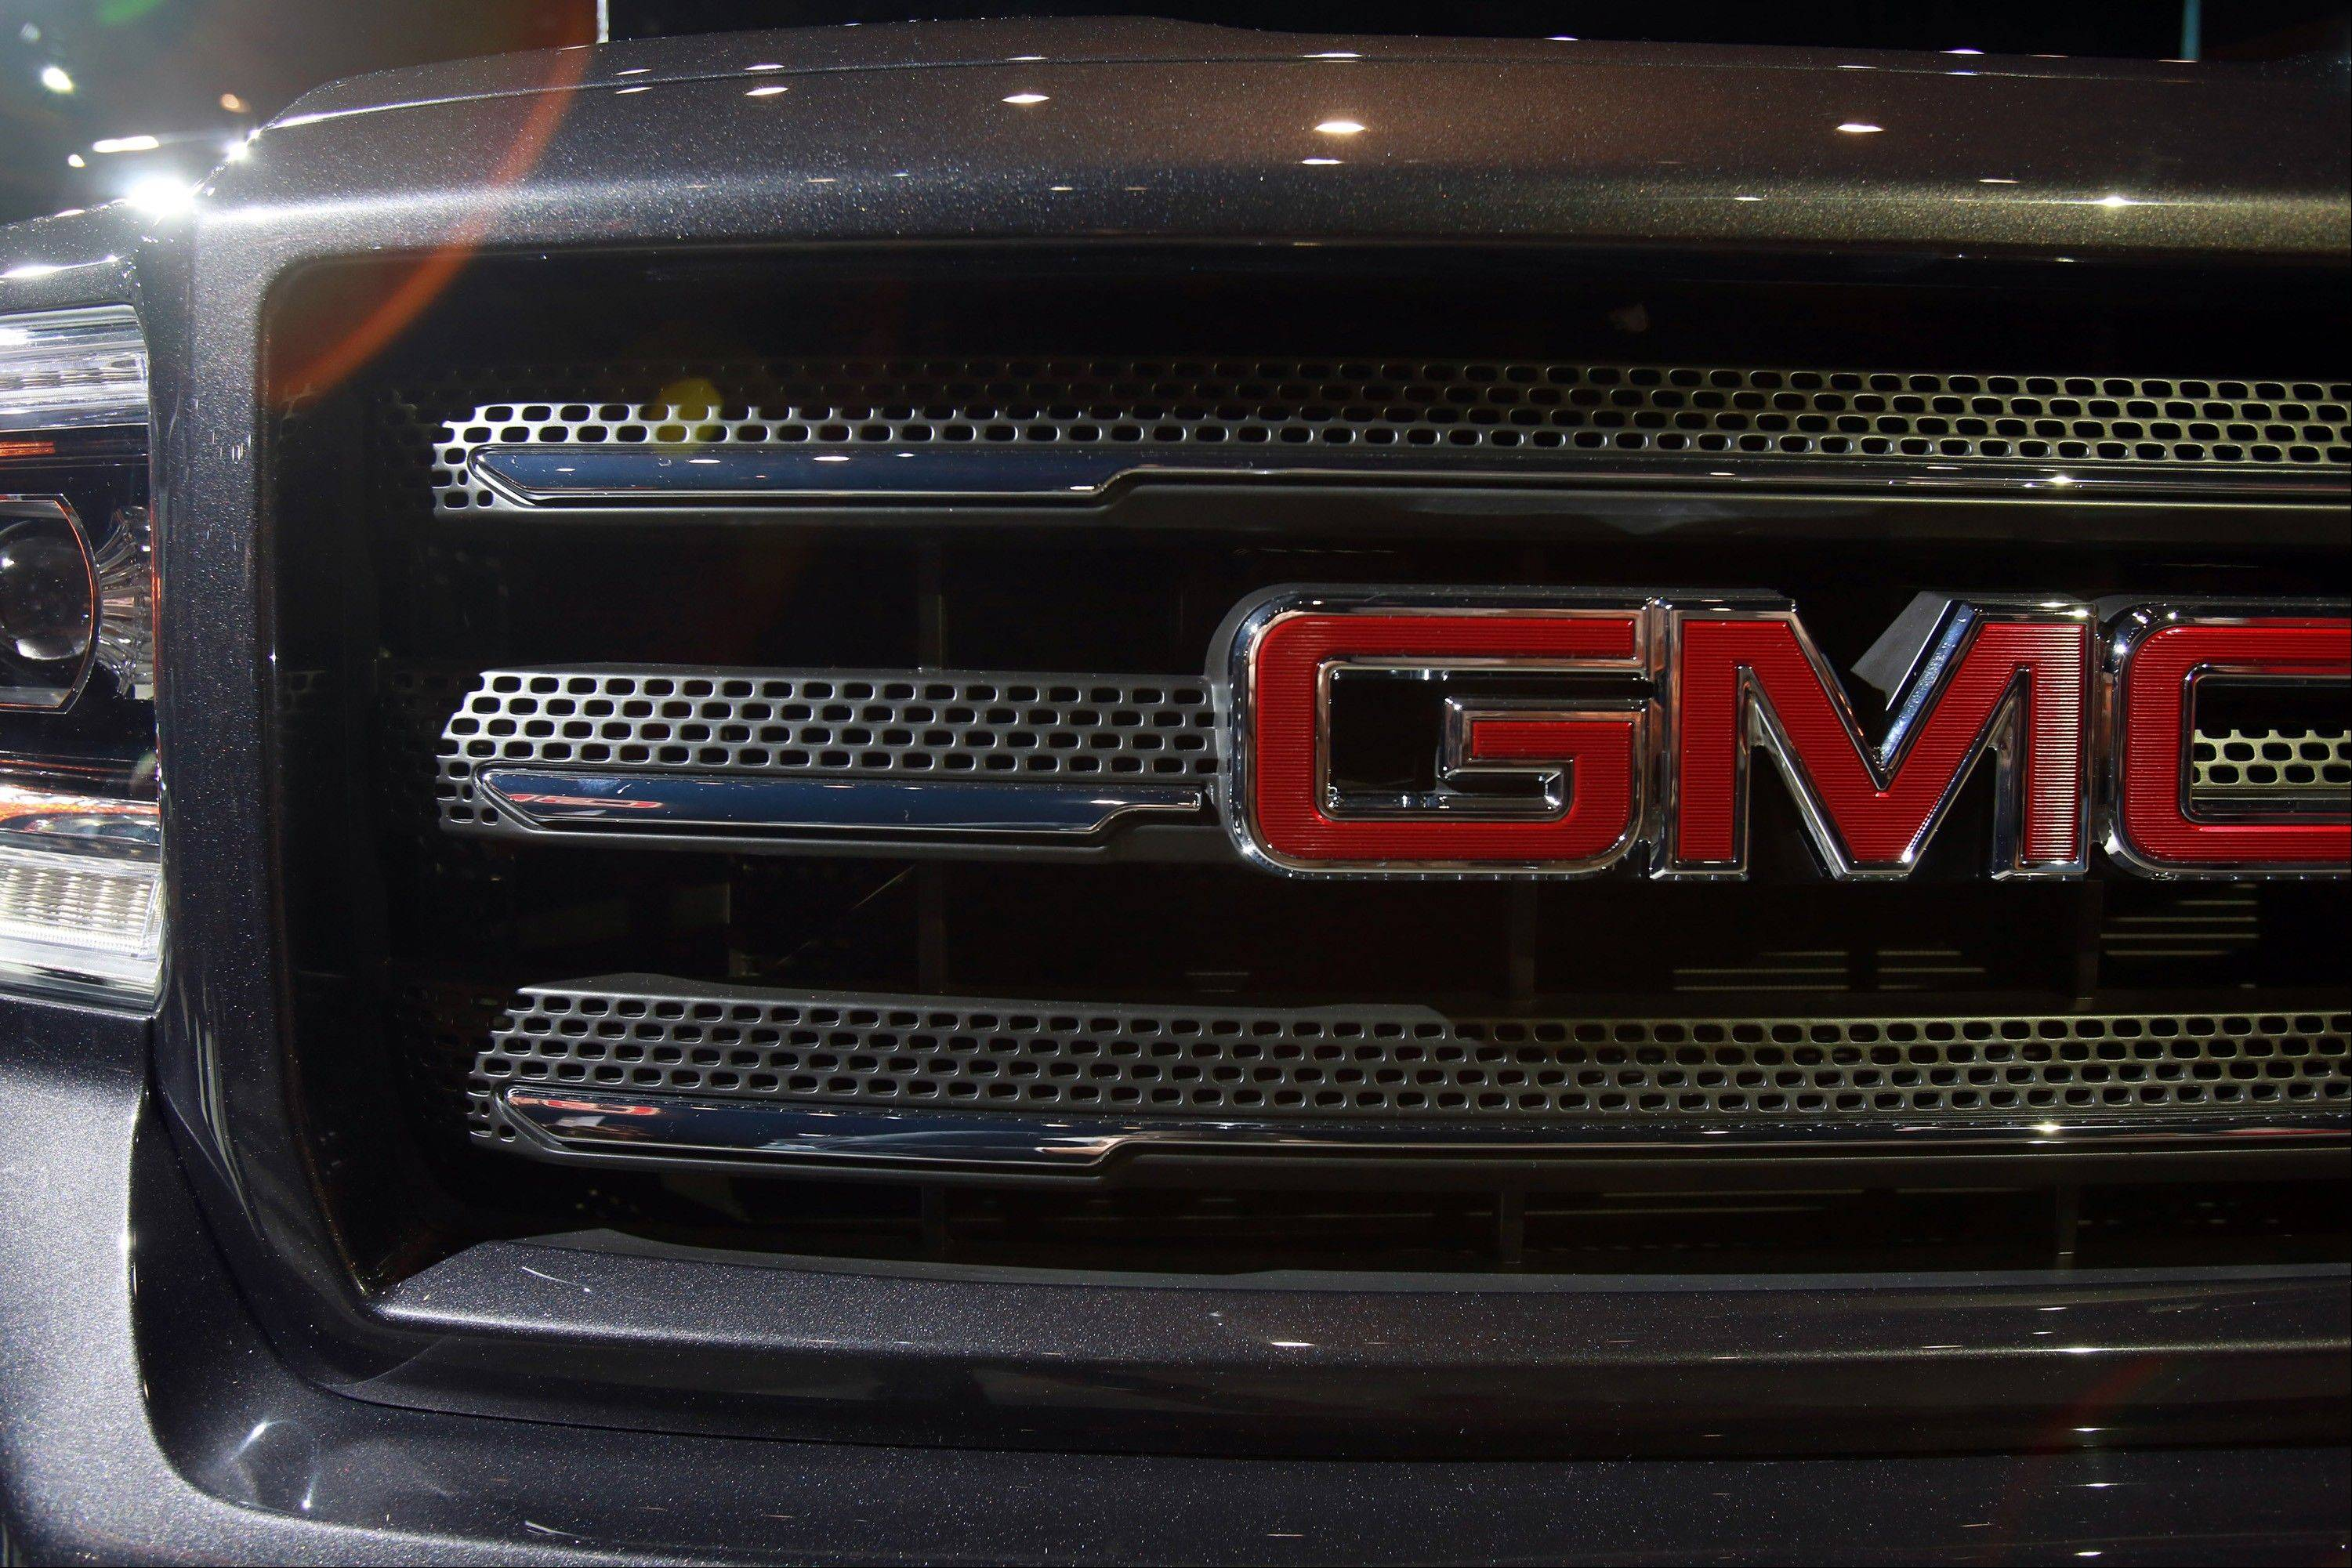 The Treasury Department said that it will sell its remaining stake in General Motors by early 2014, writing the final chapter of a $50 billion bailout that saved the auto giant but stoked a heated national debate about the government's role in private industry.